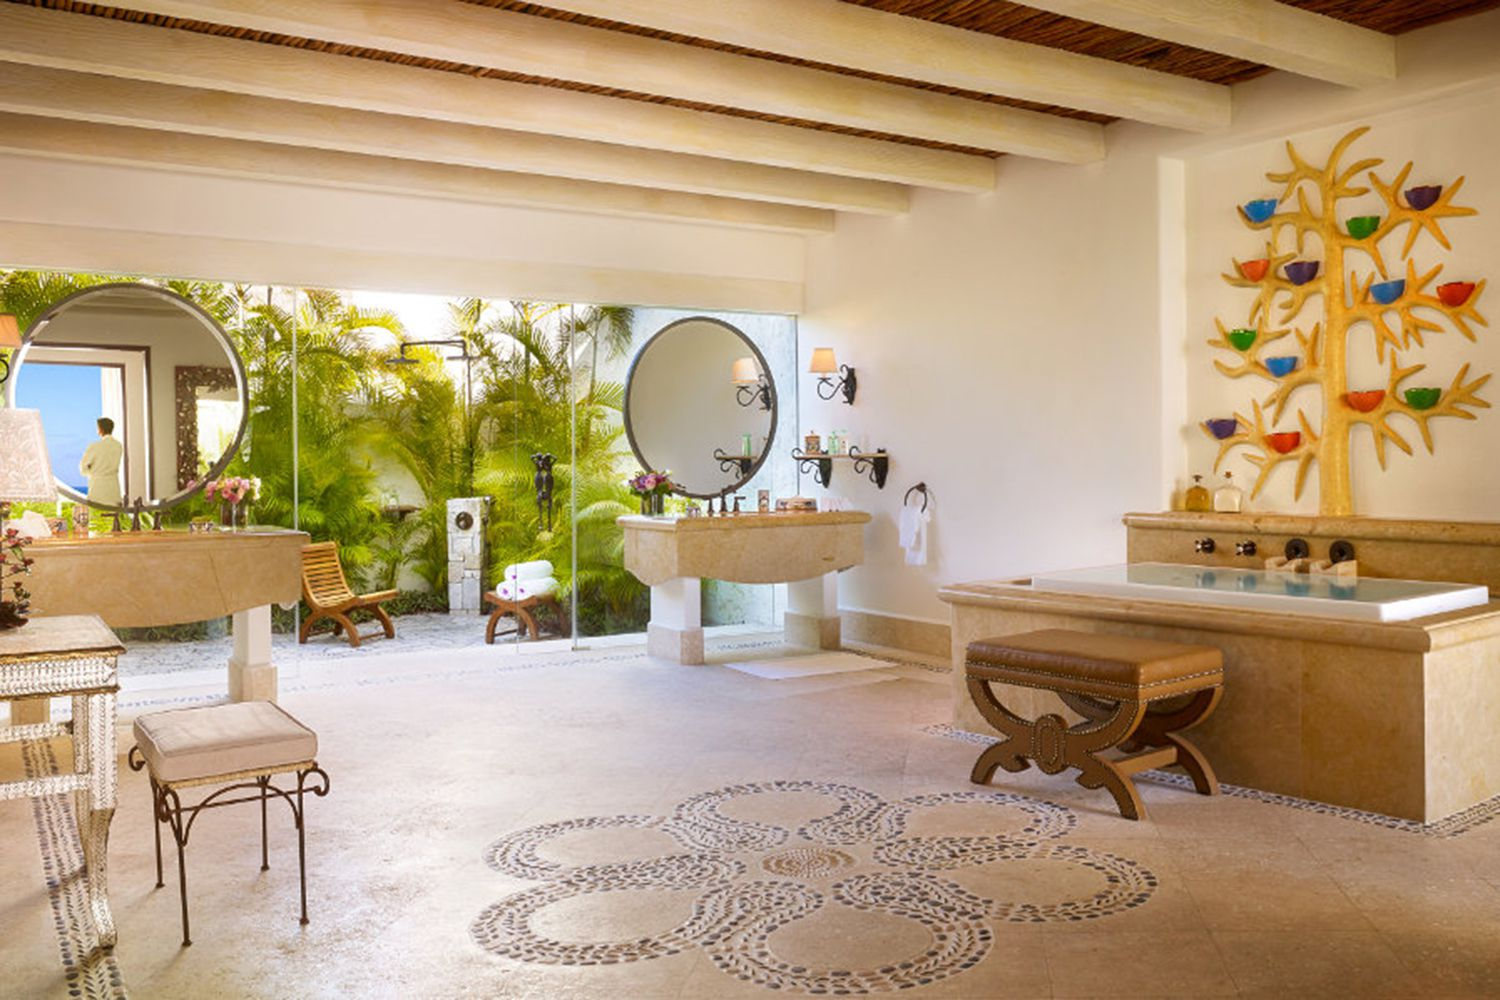 Best Hotel Bathtubs for Traveling Couples